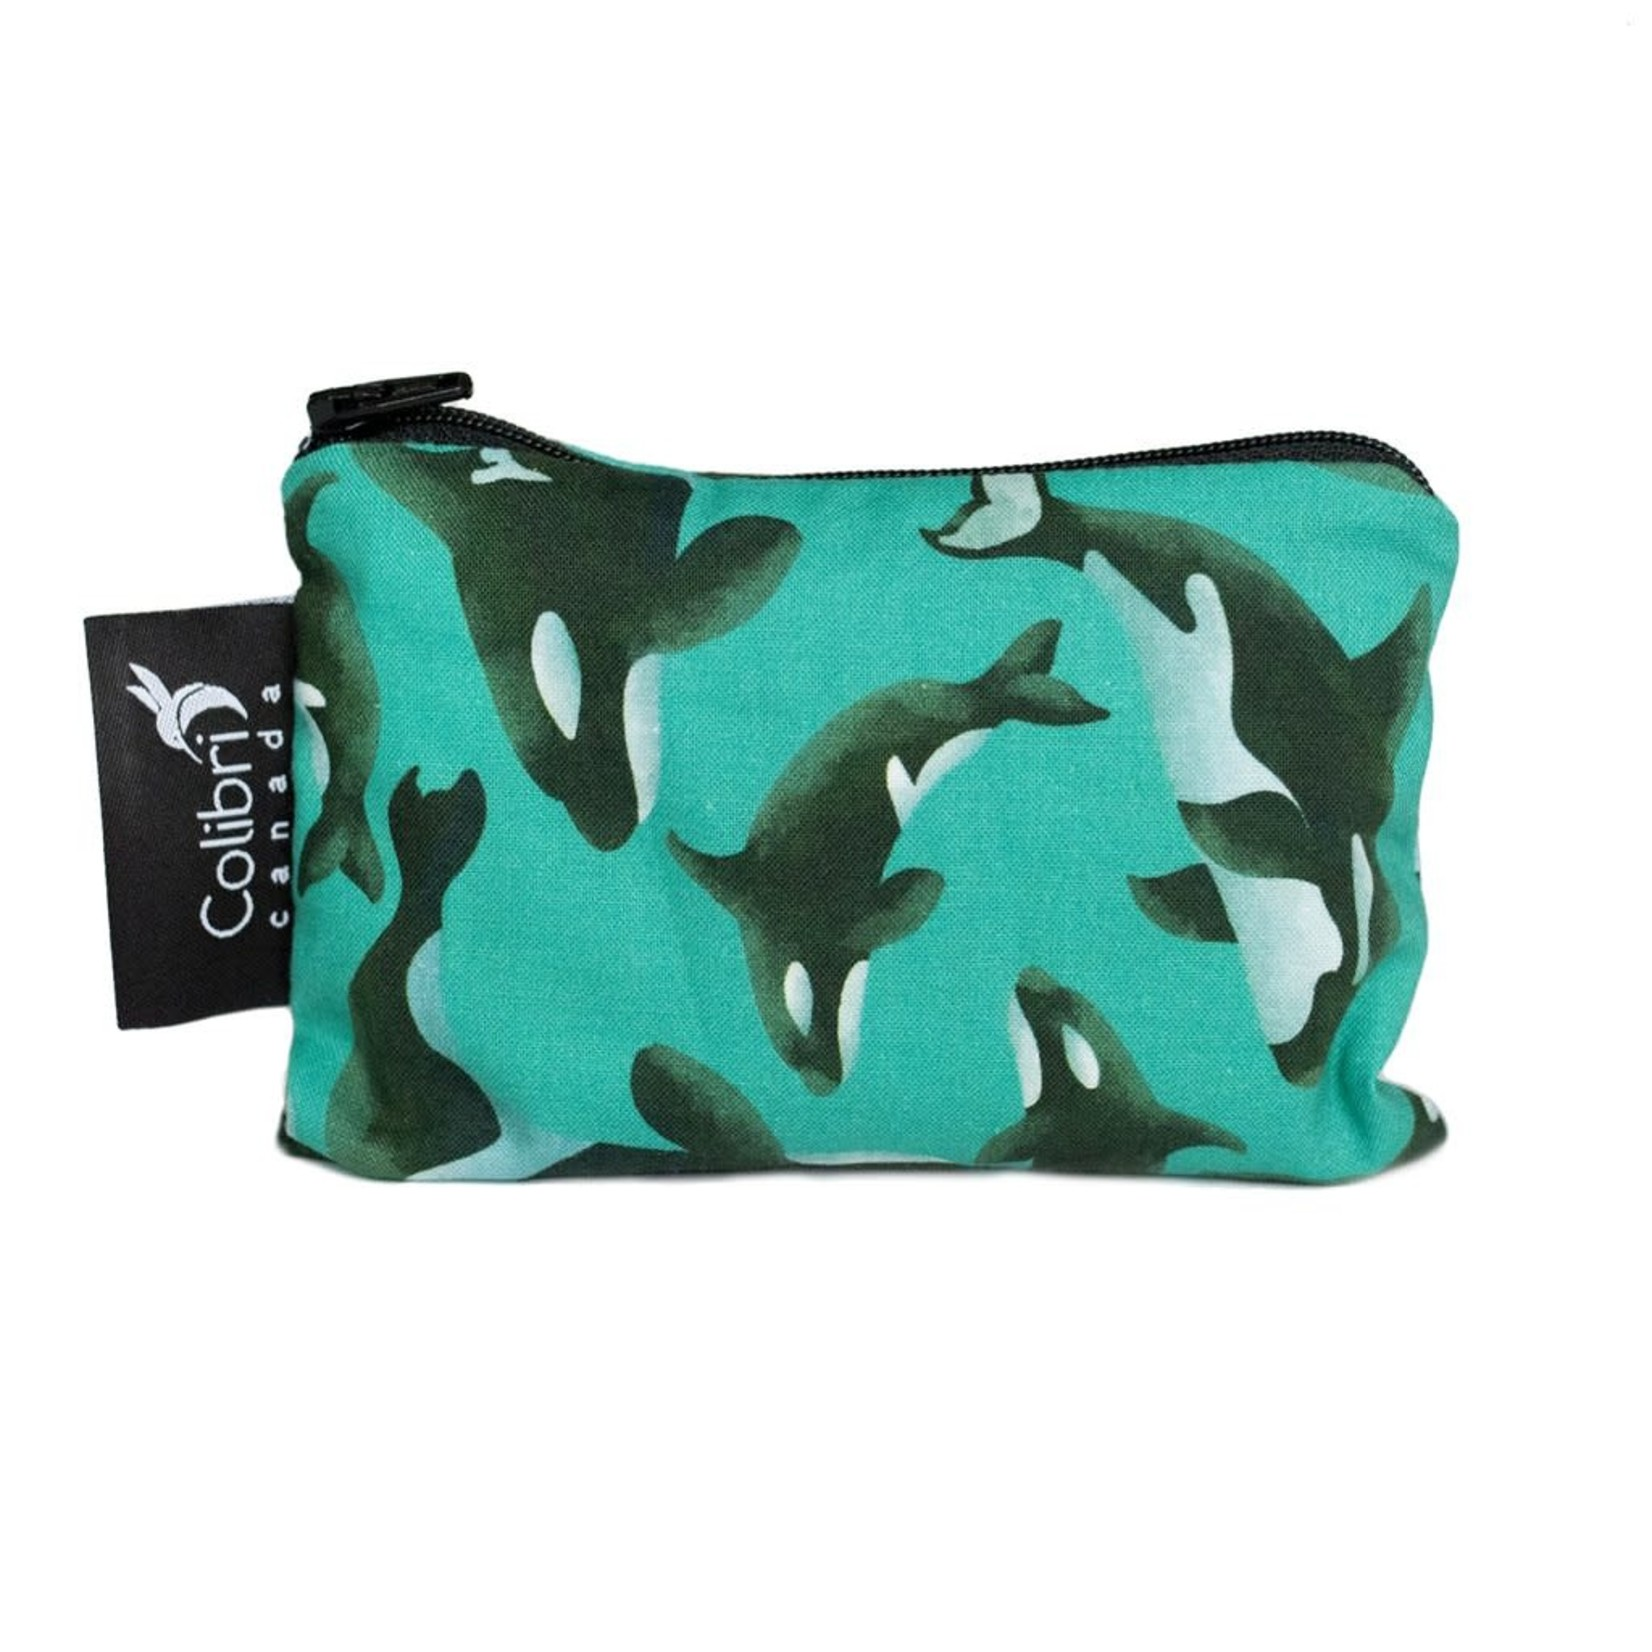 REUSABLE SNACK BAGS - ORCA